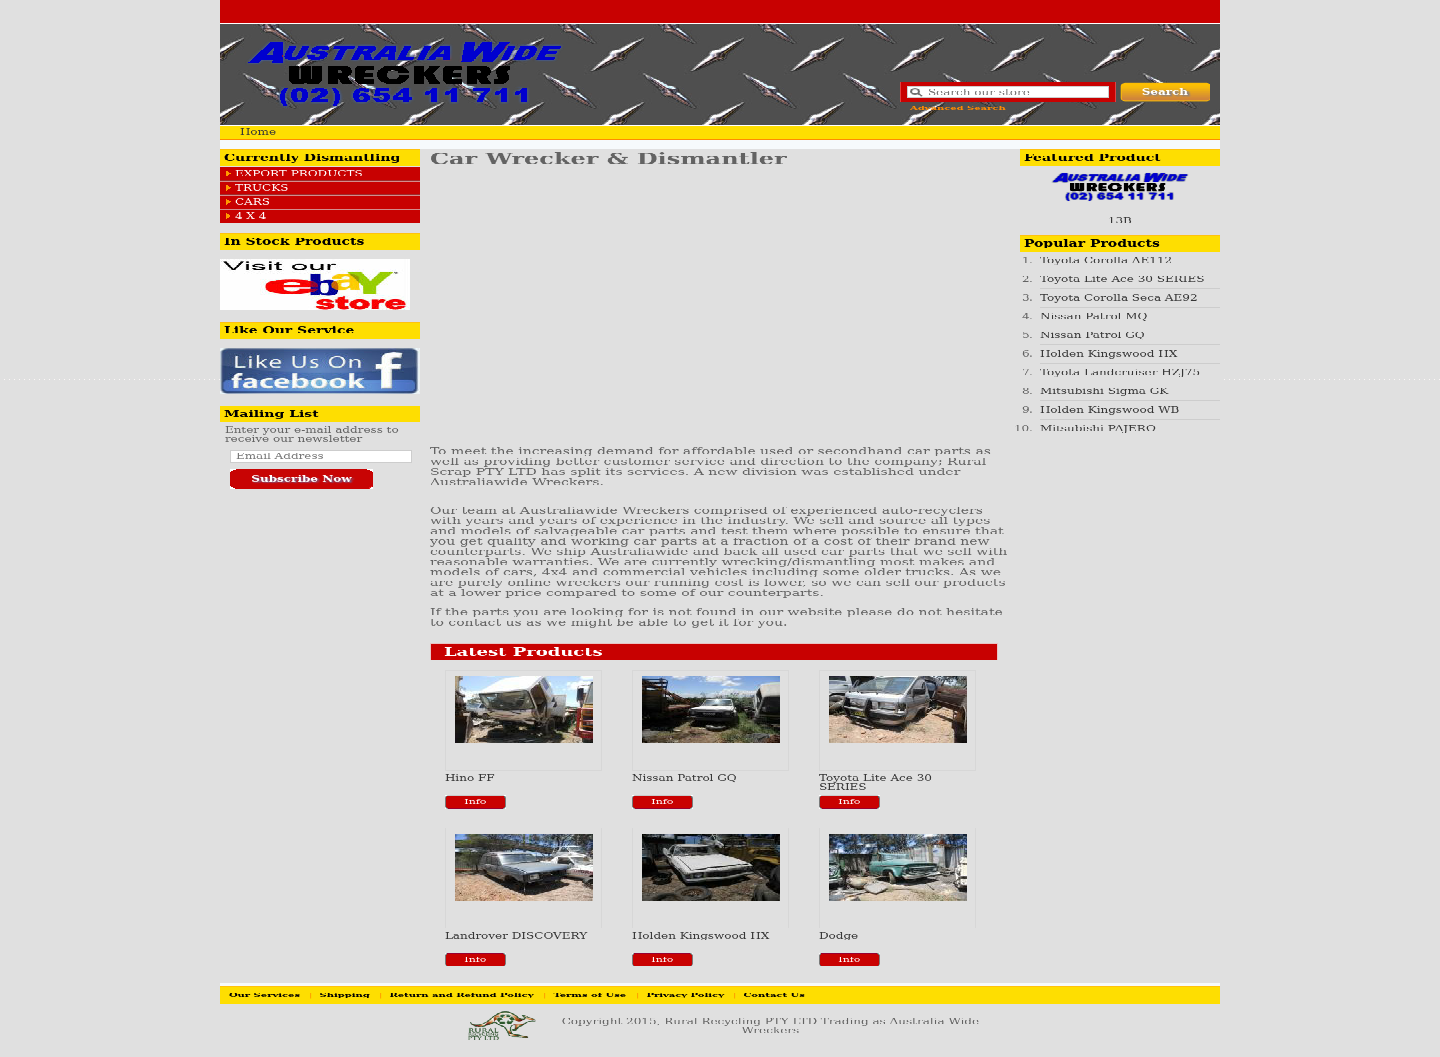 Australiawide Wreckers Website